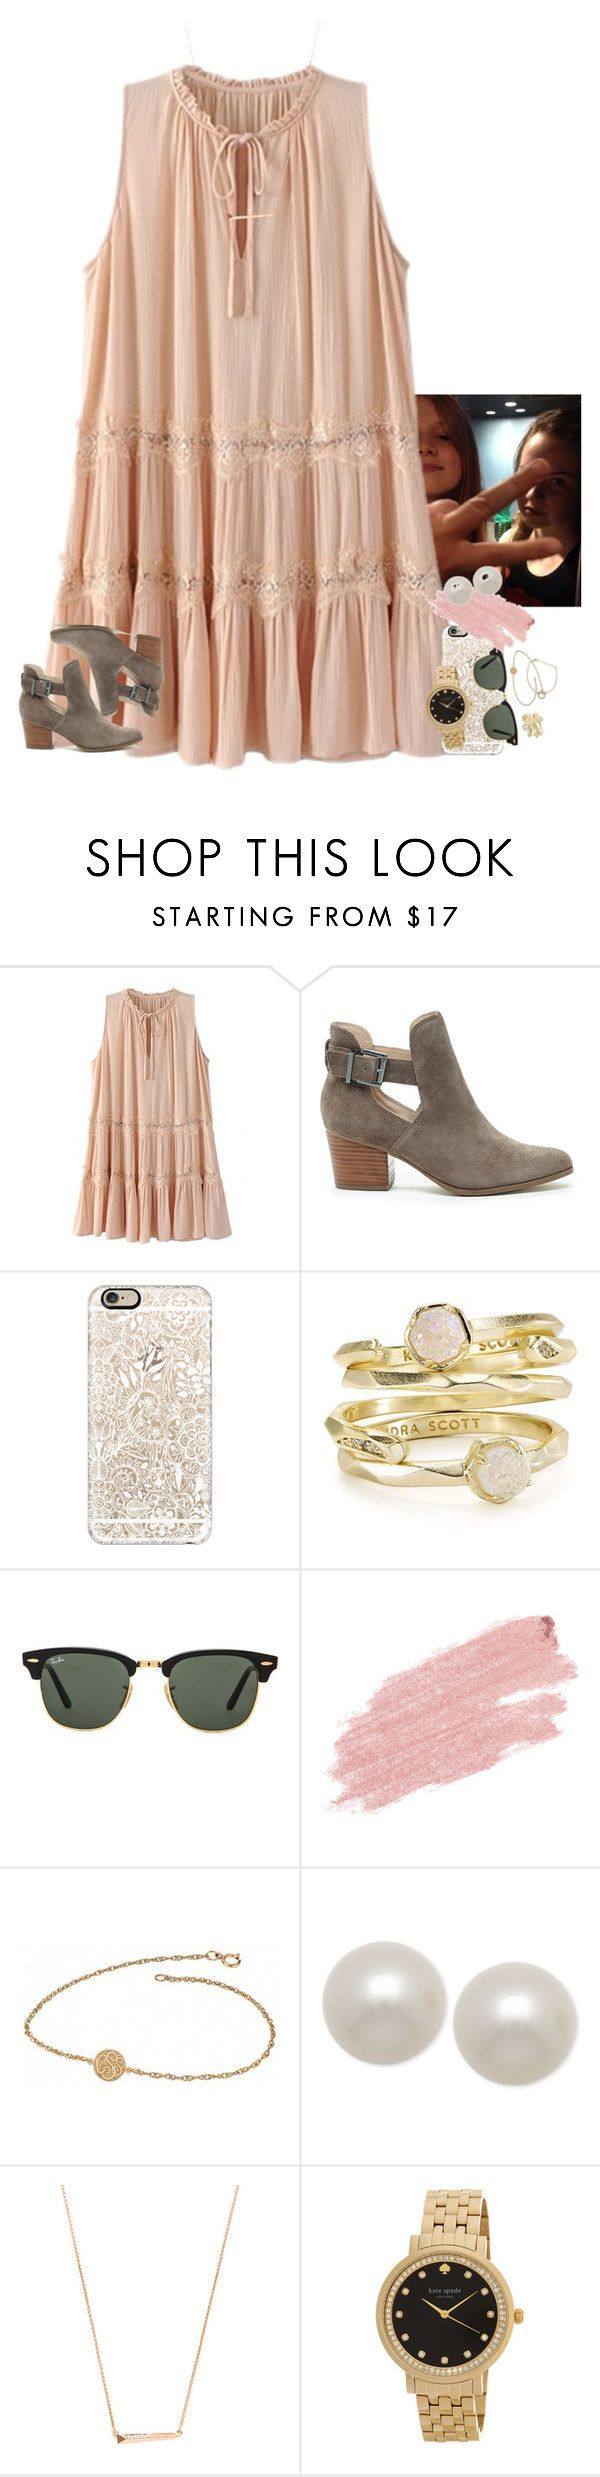 """wassup babes⚓️"" by ellaswiftie13 ❤ liked on Polyvore featuring Sole Society, Casetify, Kendra Scott, Ray-Ban, Jane Iredale, Alison & Ivy, Honora, Kate Spade and Cartier"